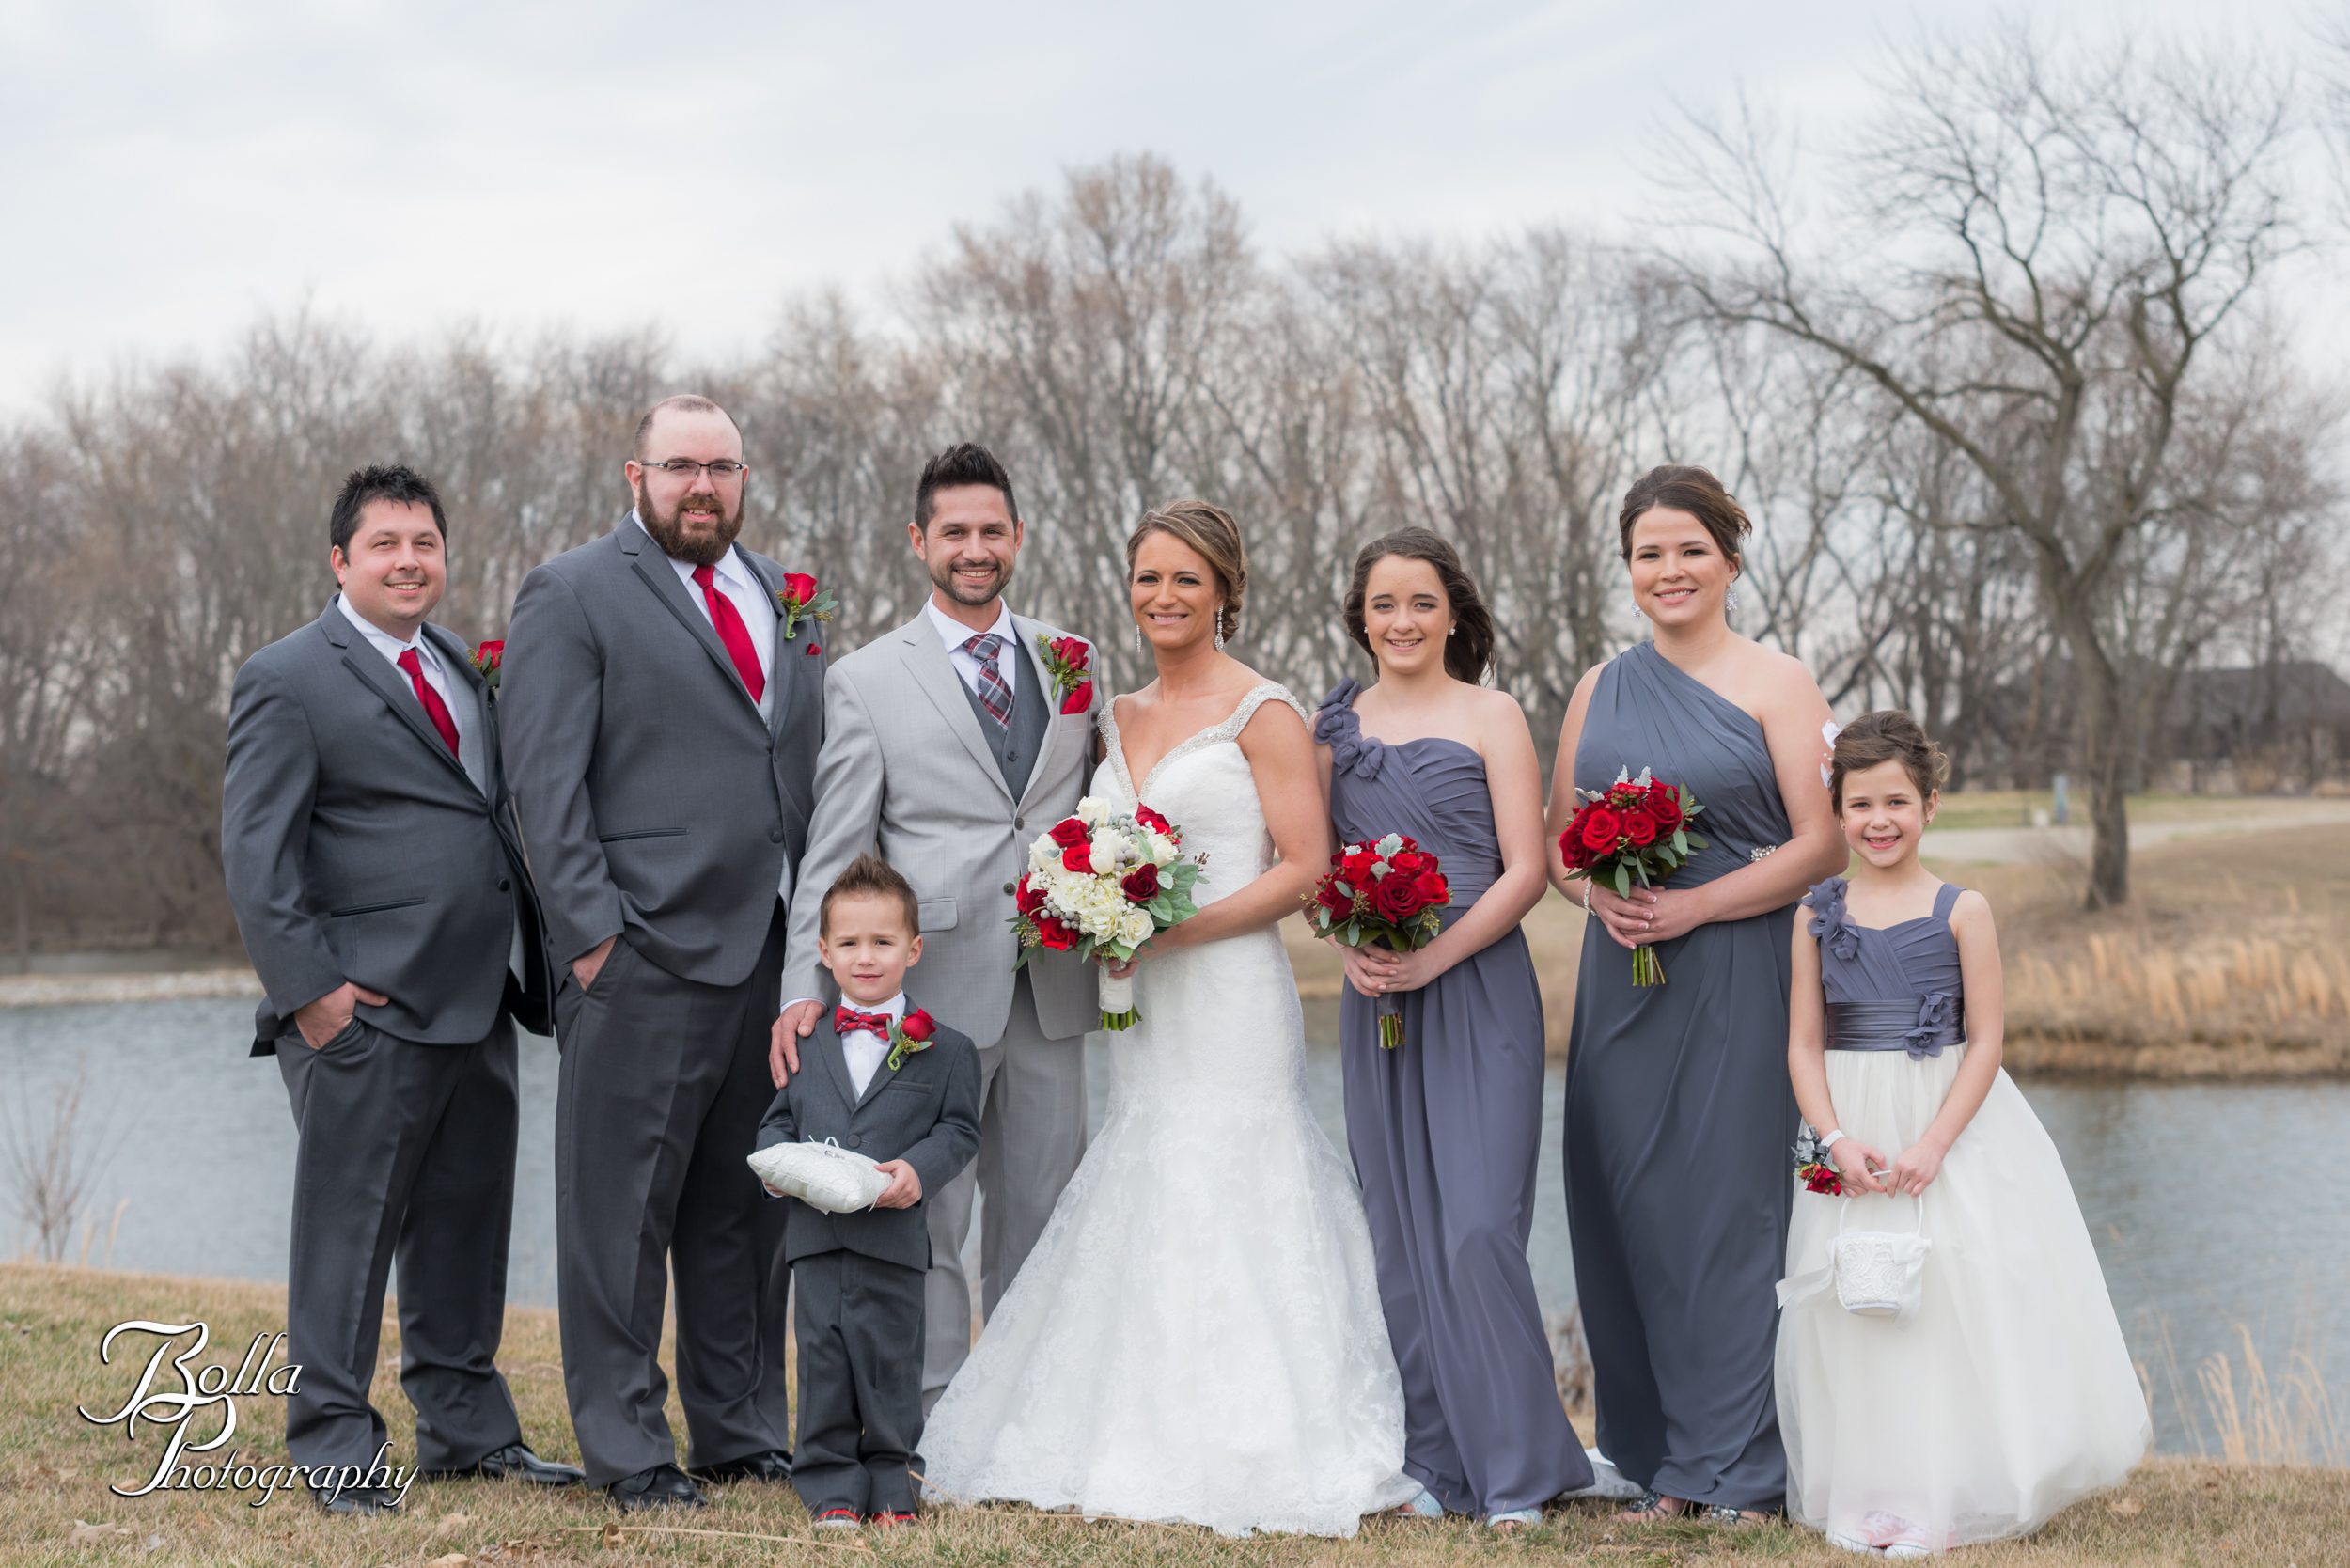 Bolla_photography_edwardsville_wedding_photographer_st_louis_weddings_highland_Allen_Warren_winter_red-0130.jpg